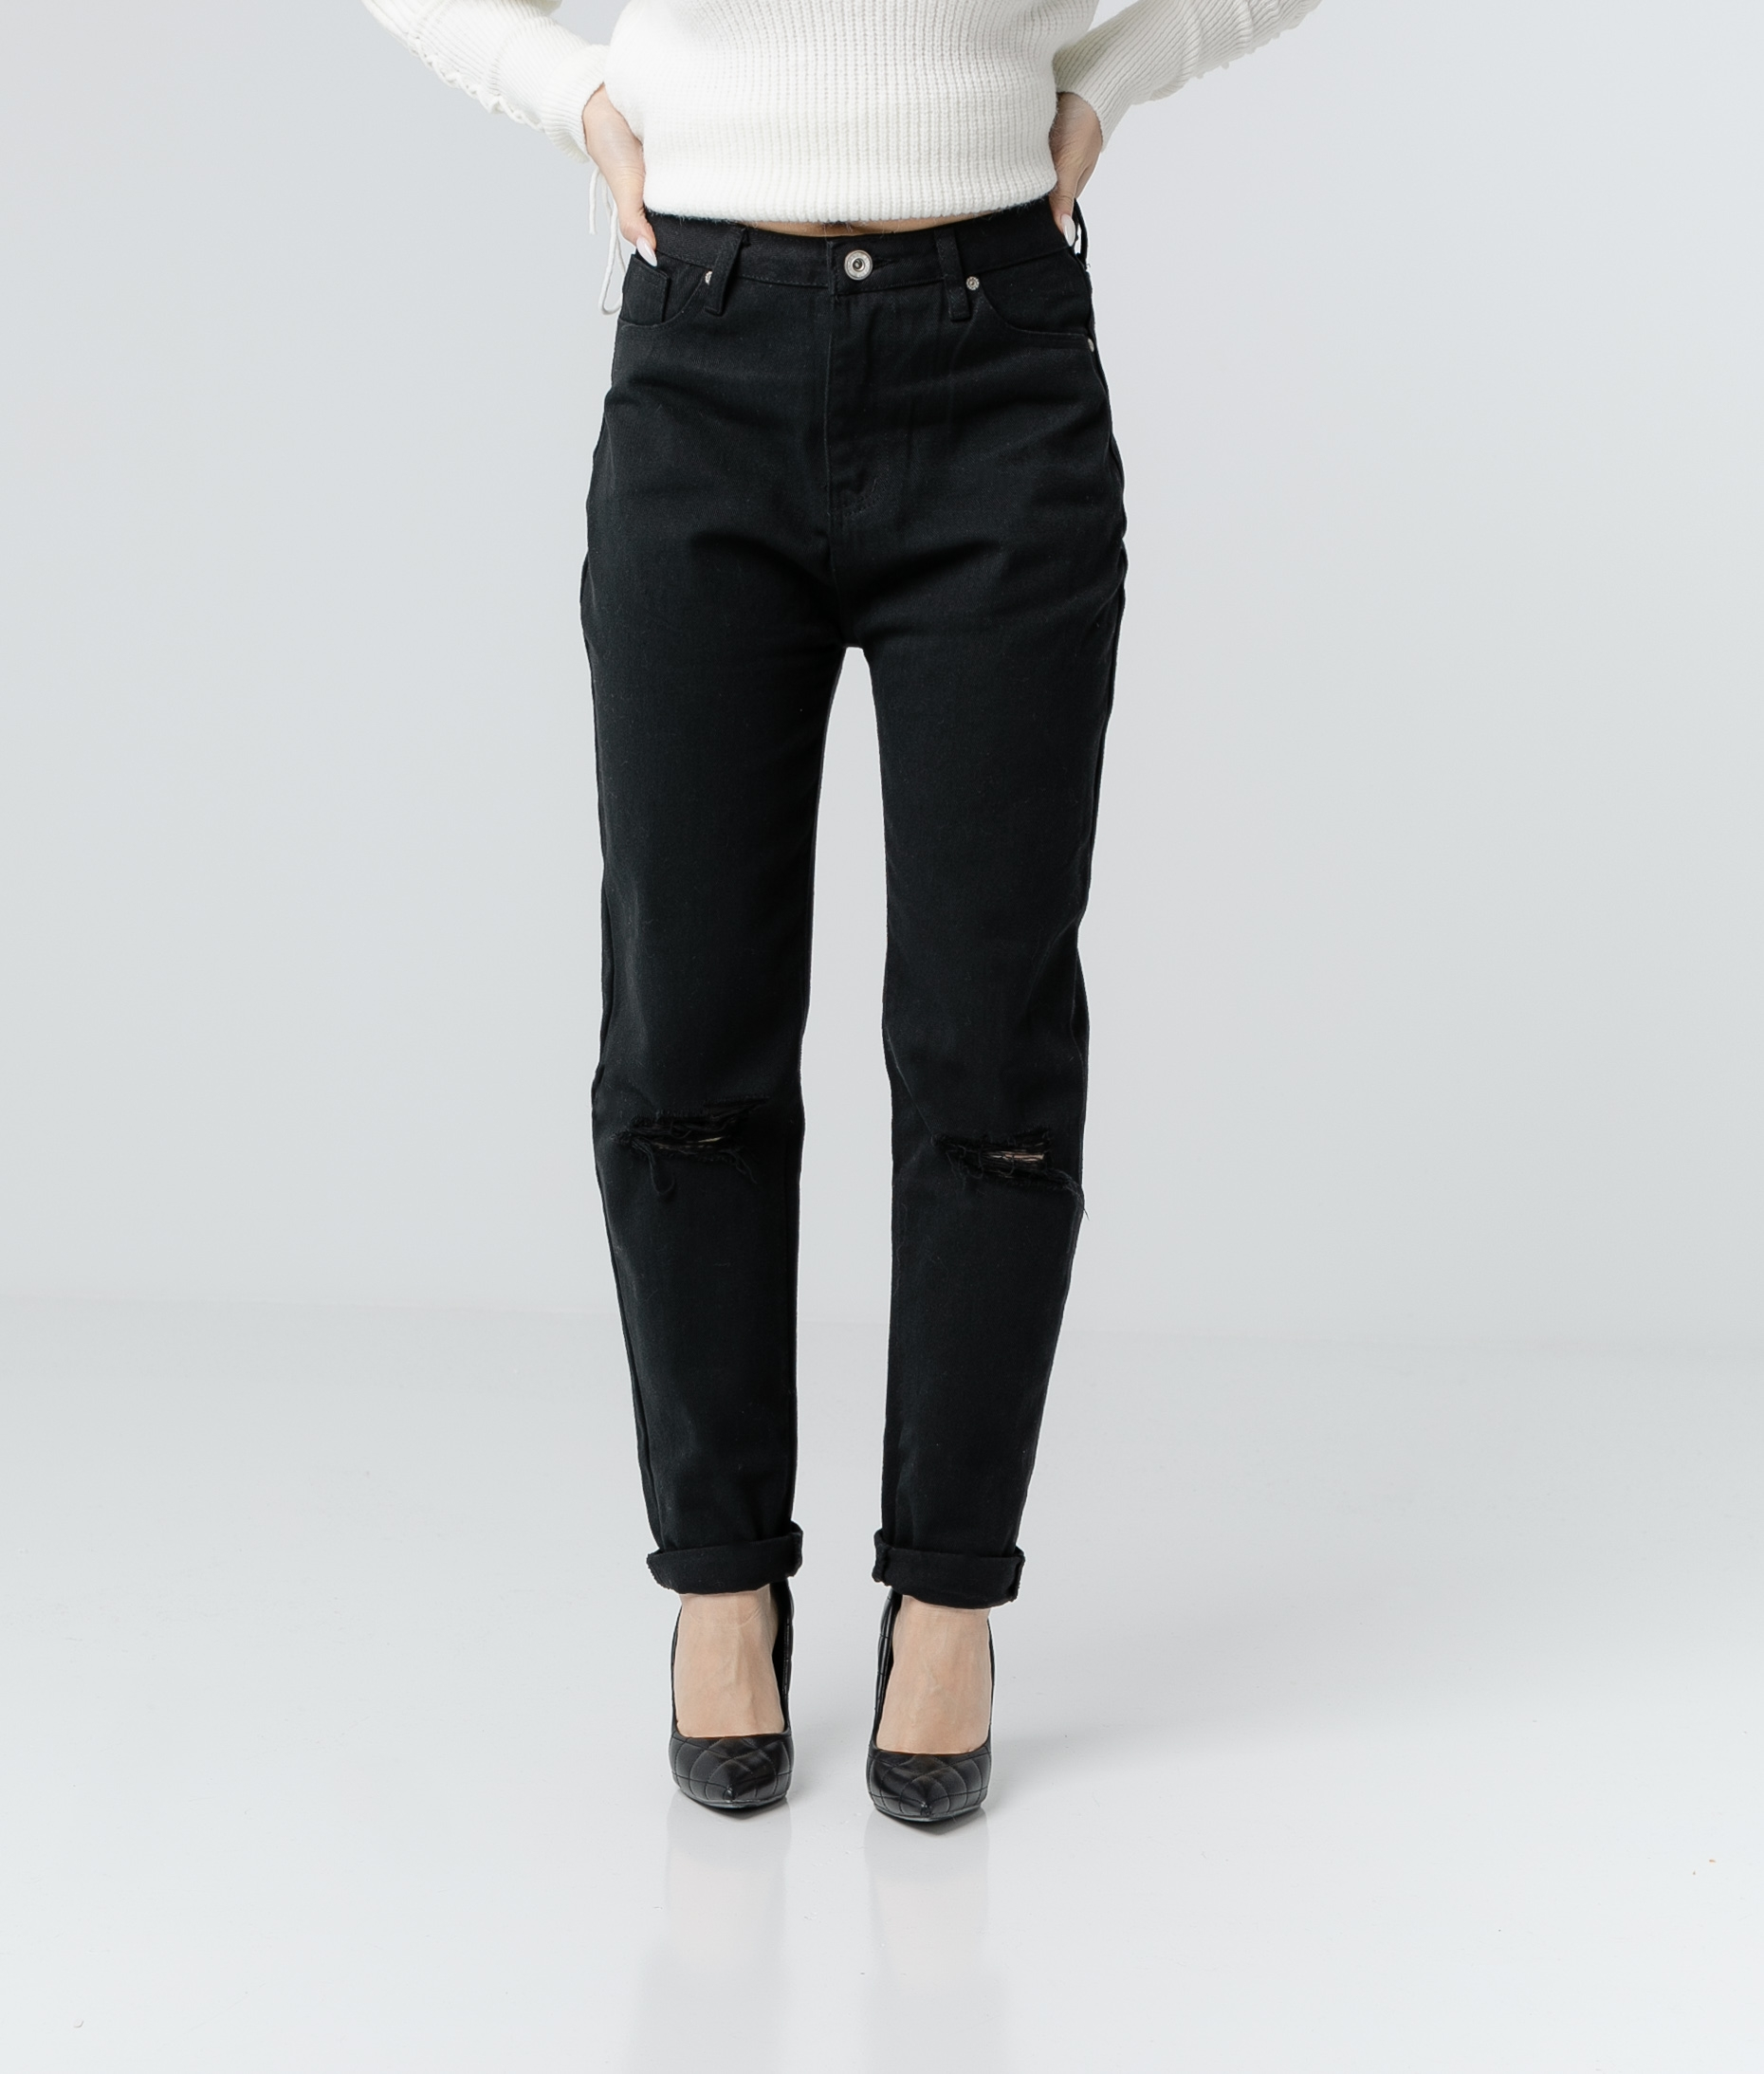 RENDA TROUSERS - BLACK